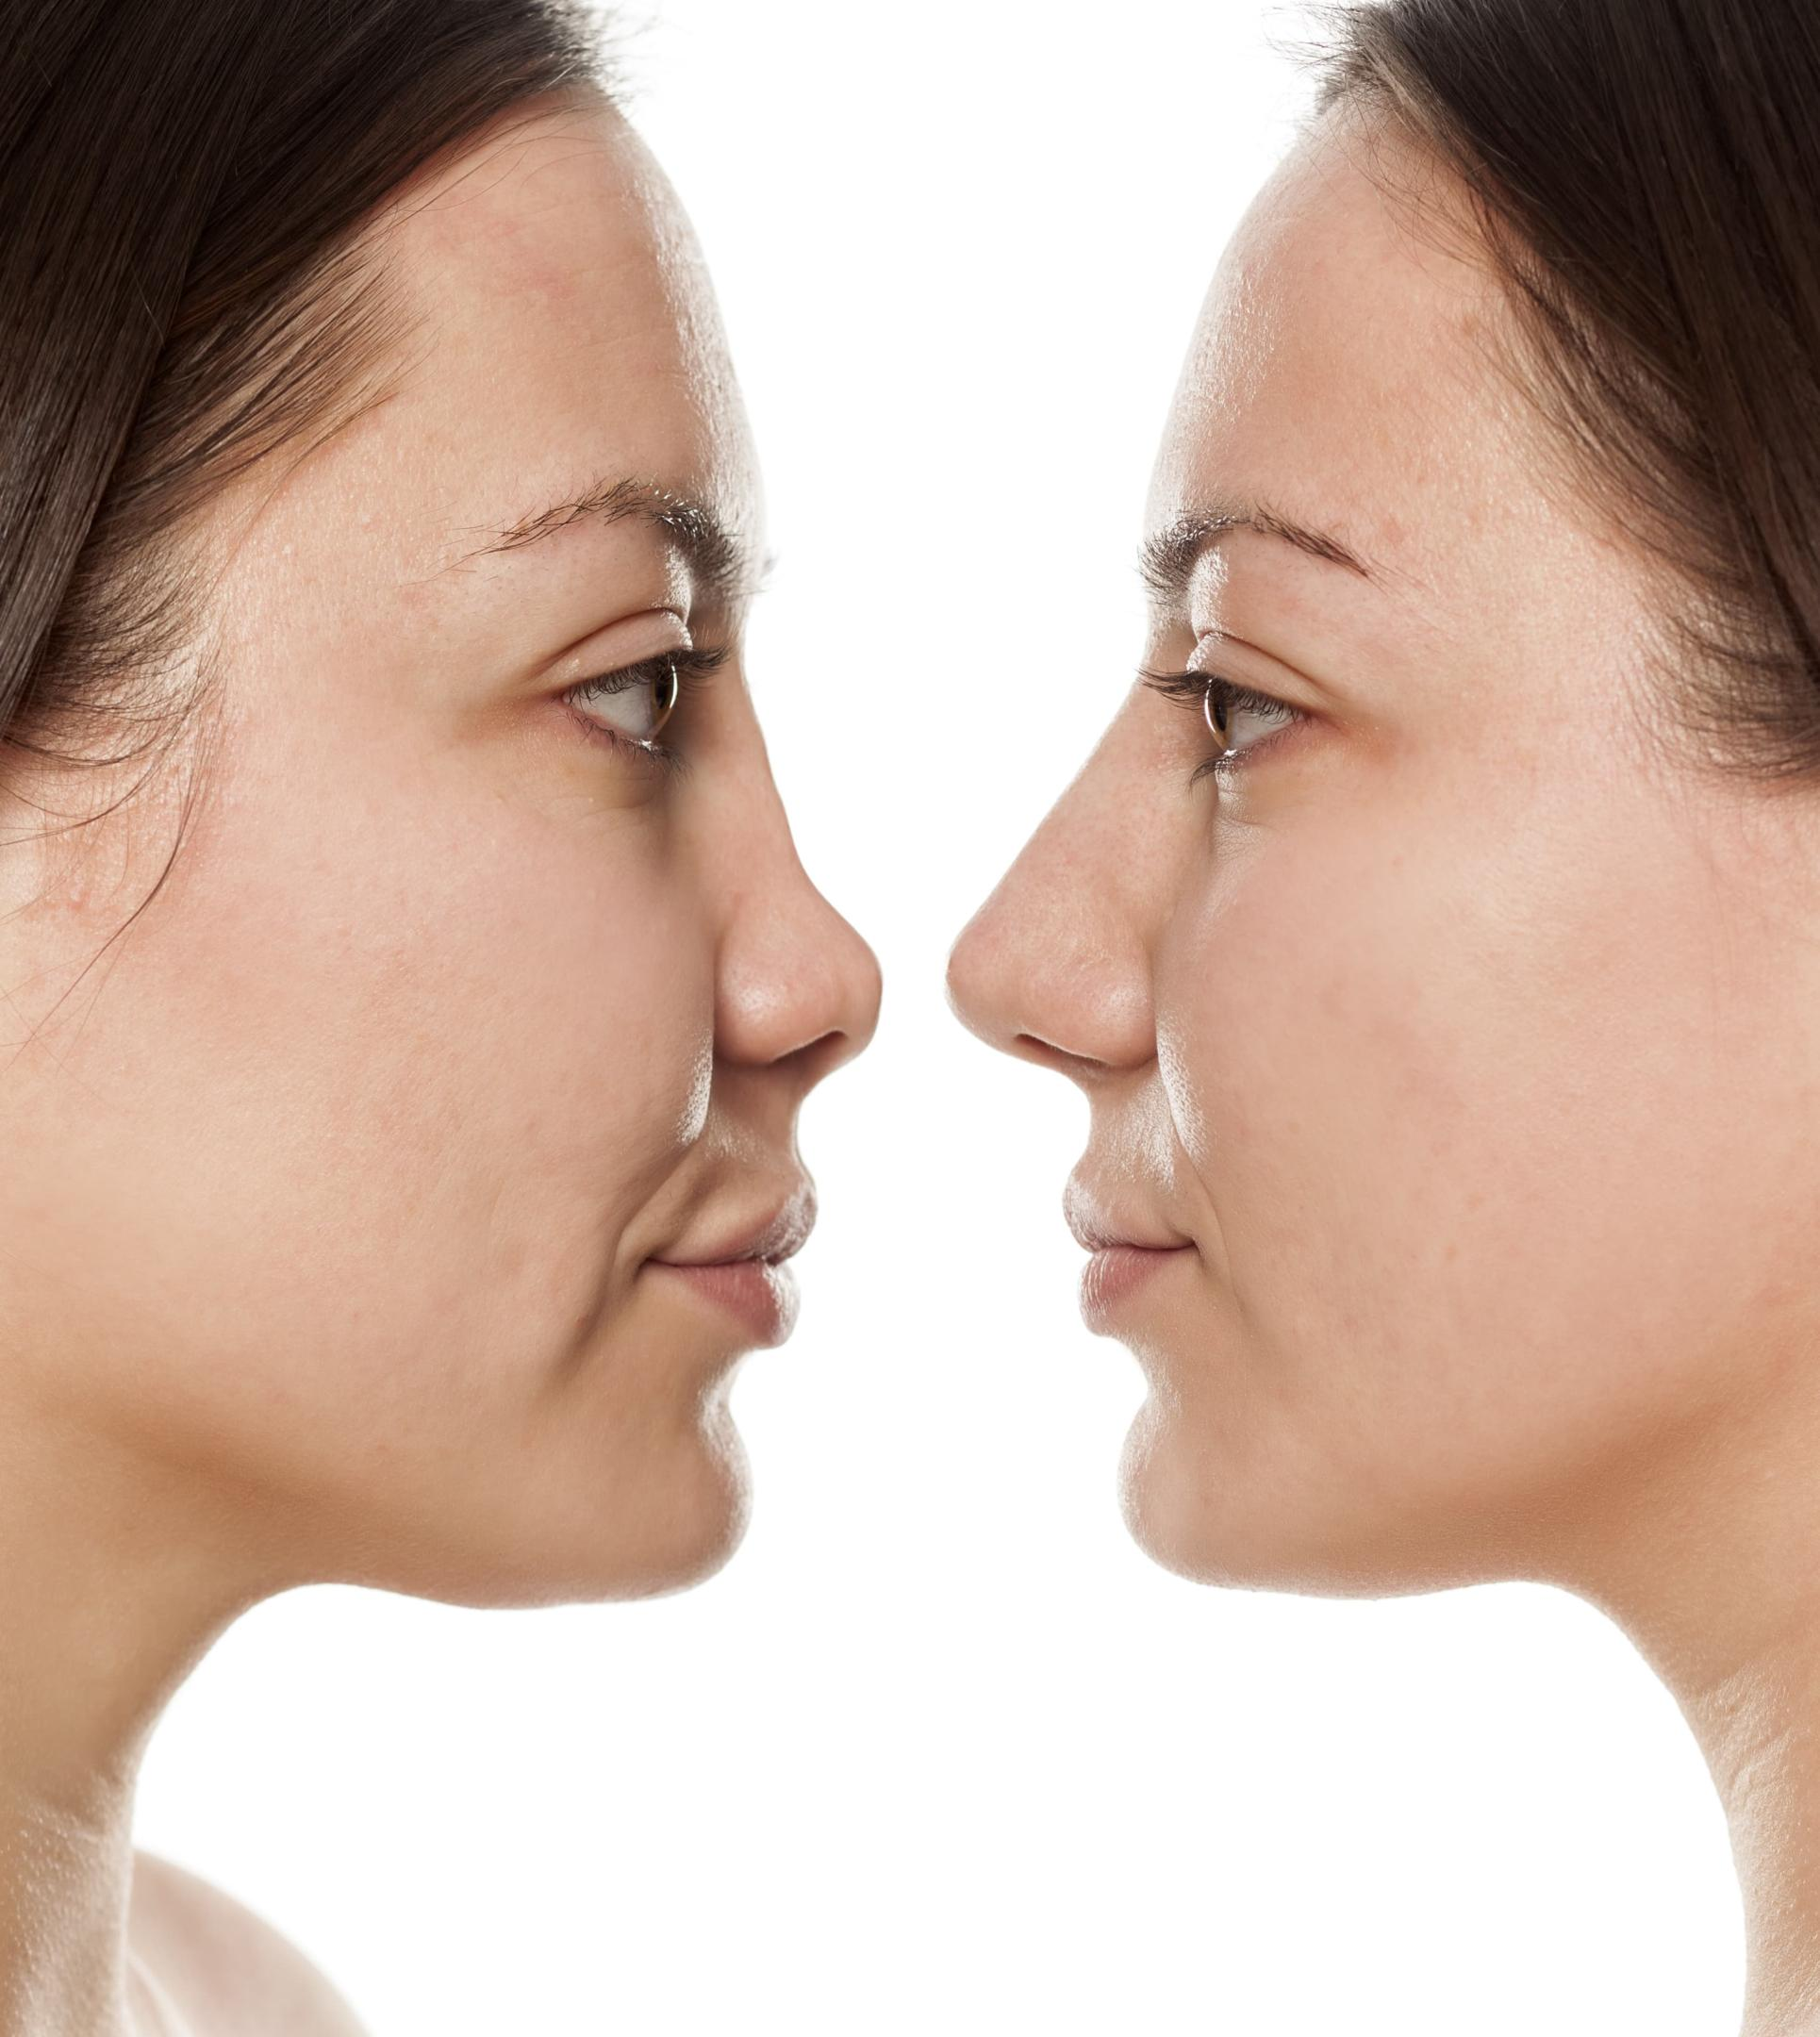 Pictures Of Face Plastic Surgery Before And After 1